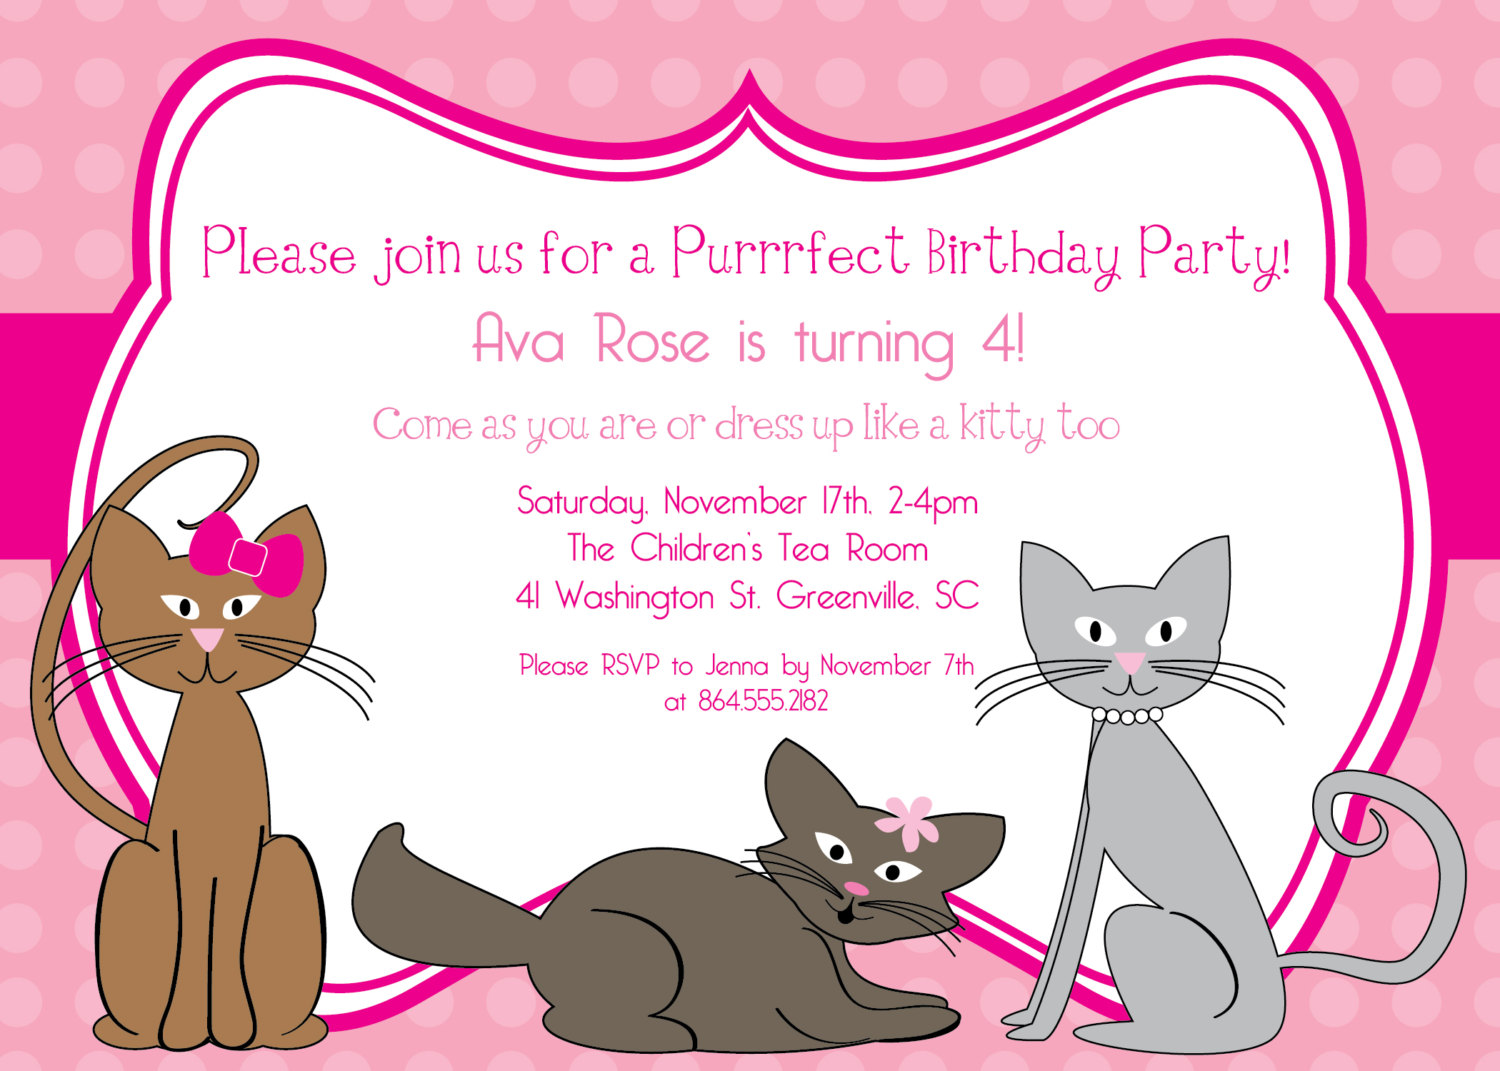 Kitty cat birthday invitation kitten kitties pink polka dots kitty cat birthday invitation kitten kitties pink polka dots purrrfect filmwisefo